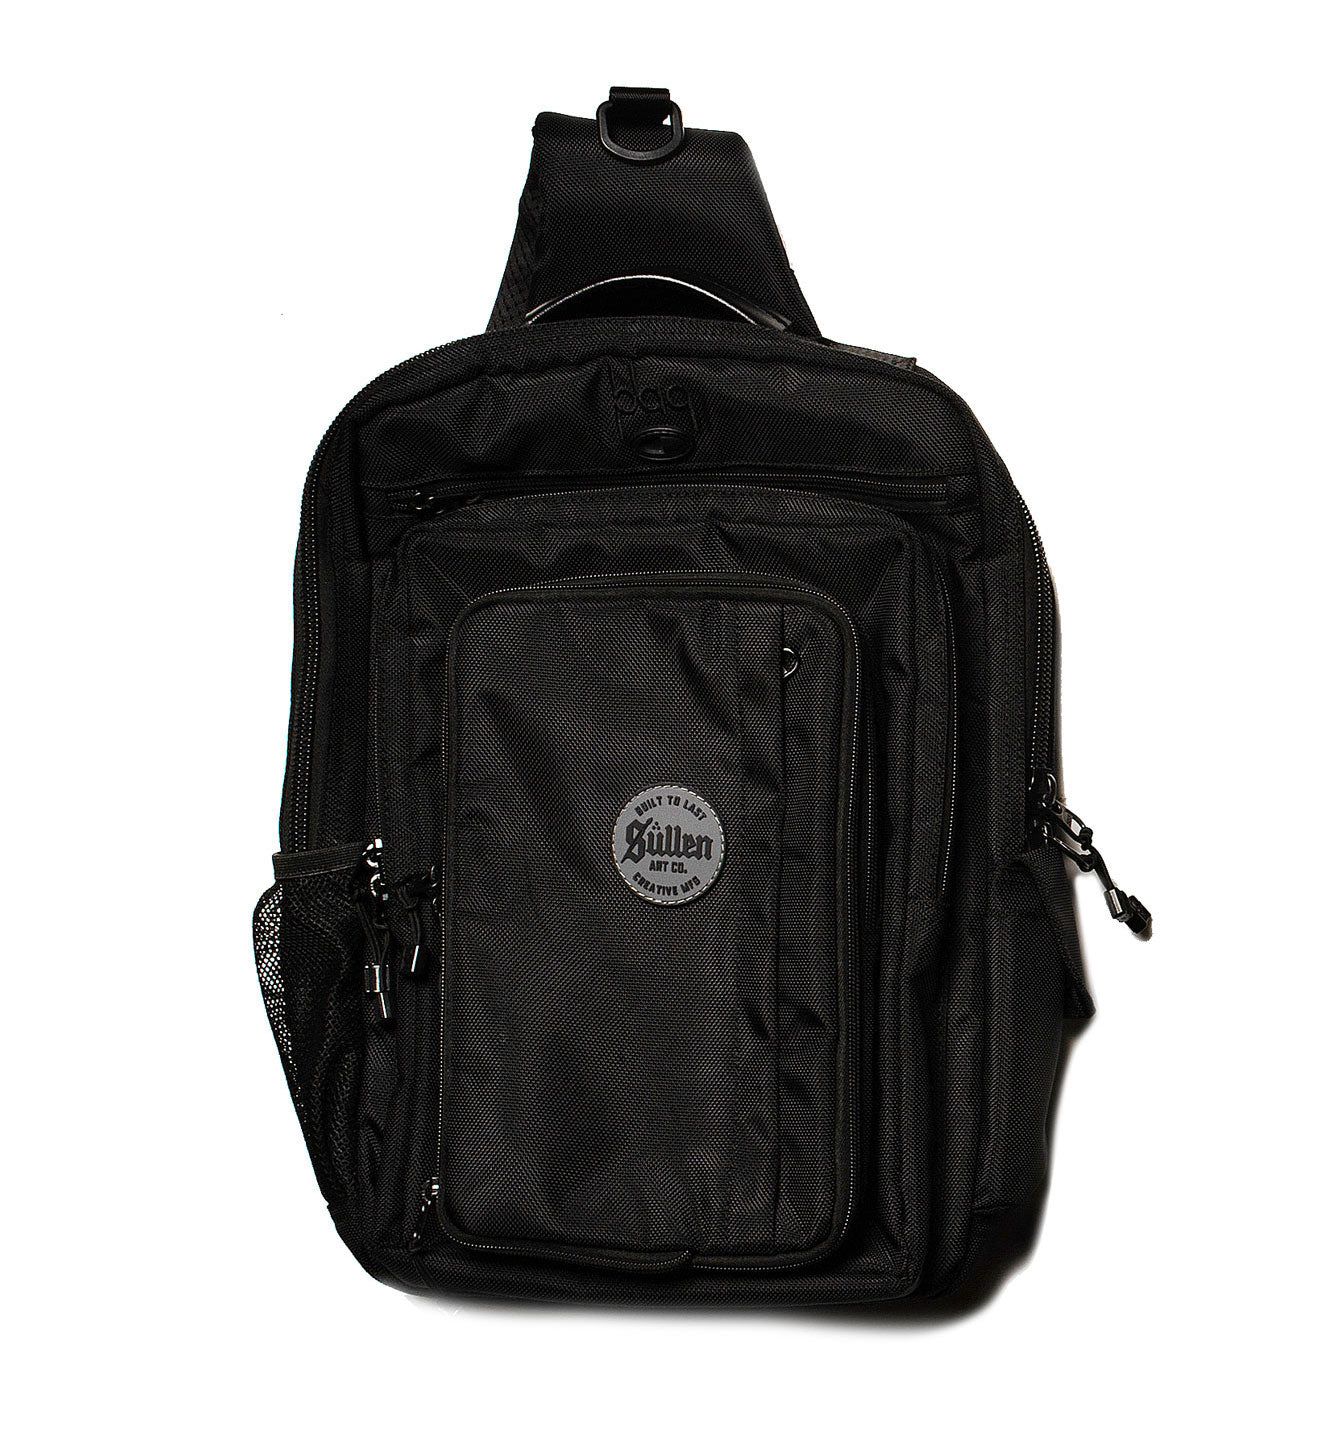 Blaq Paq™ Commuter Sling Bag